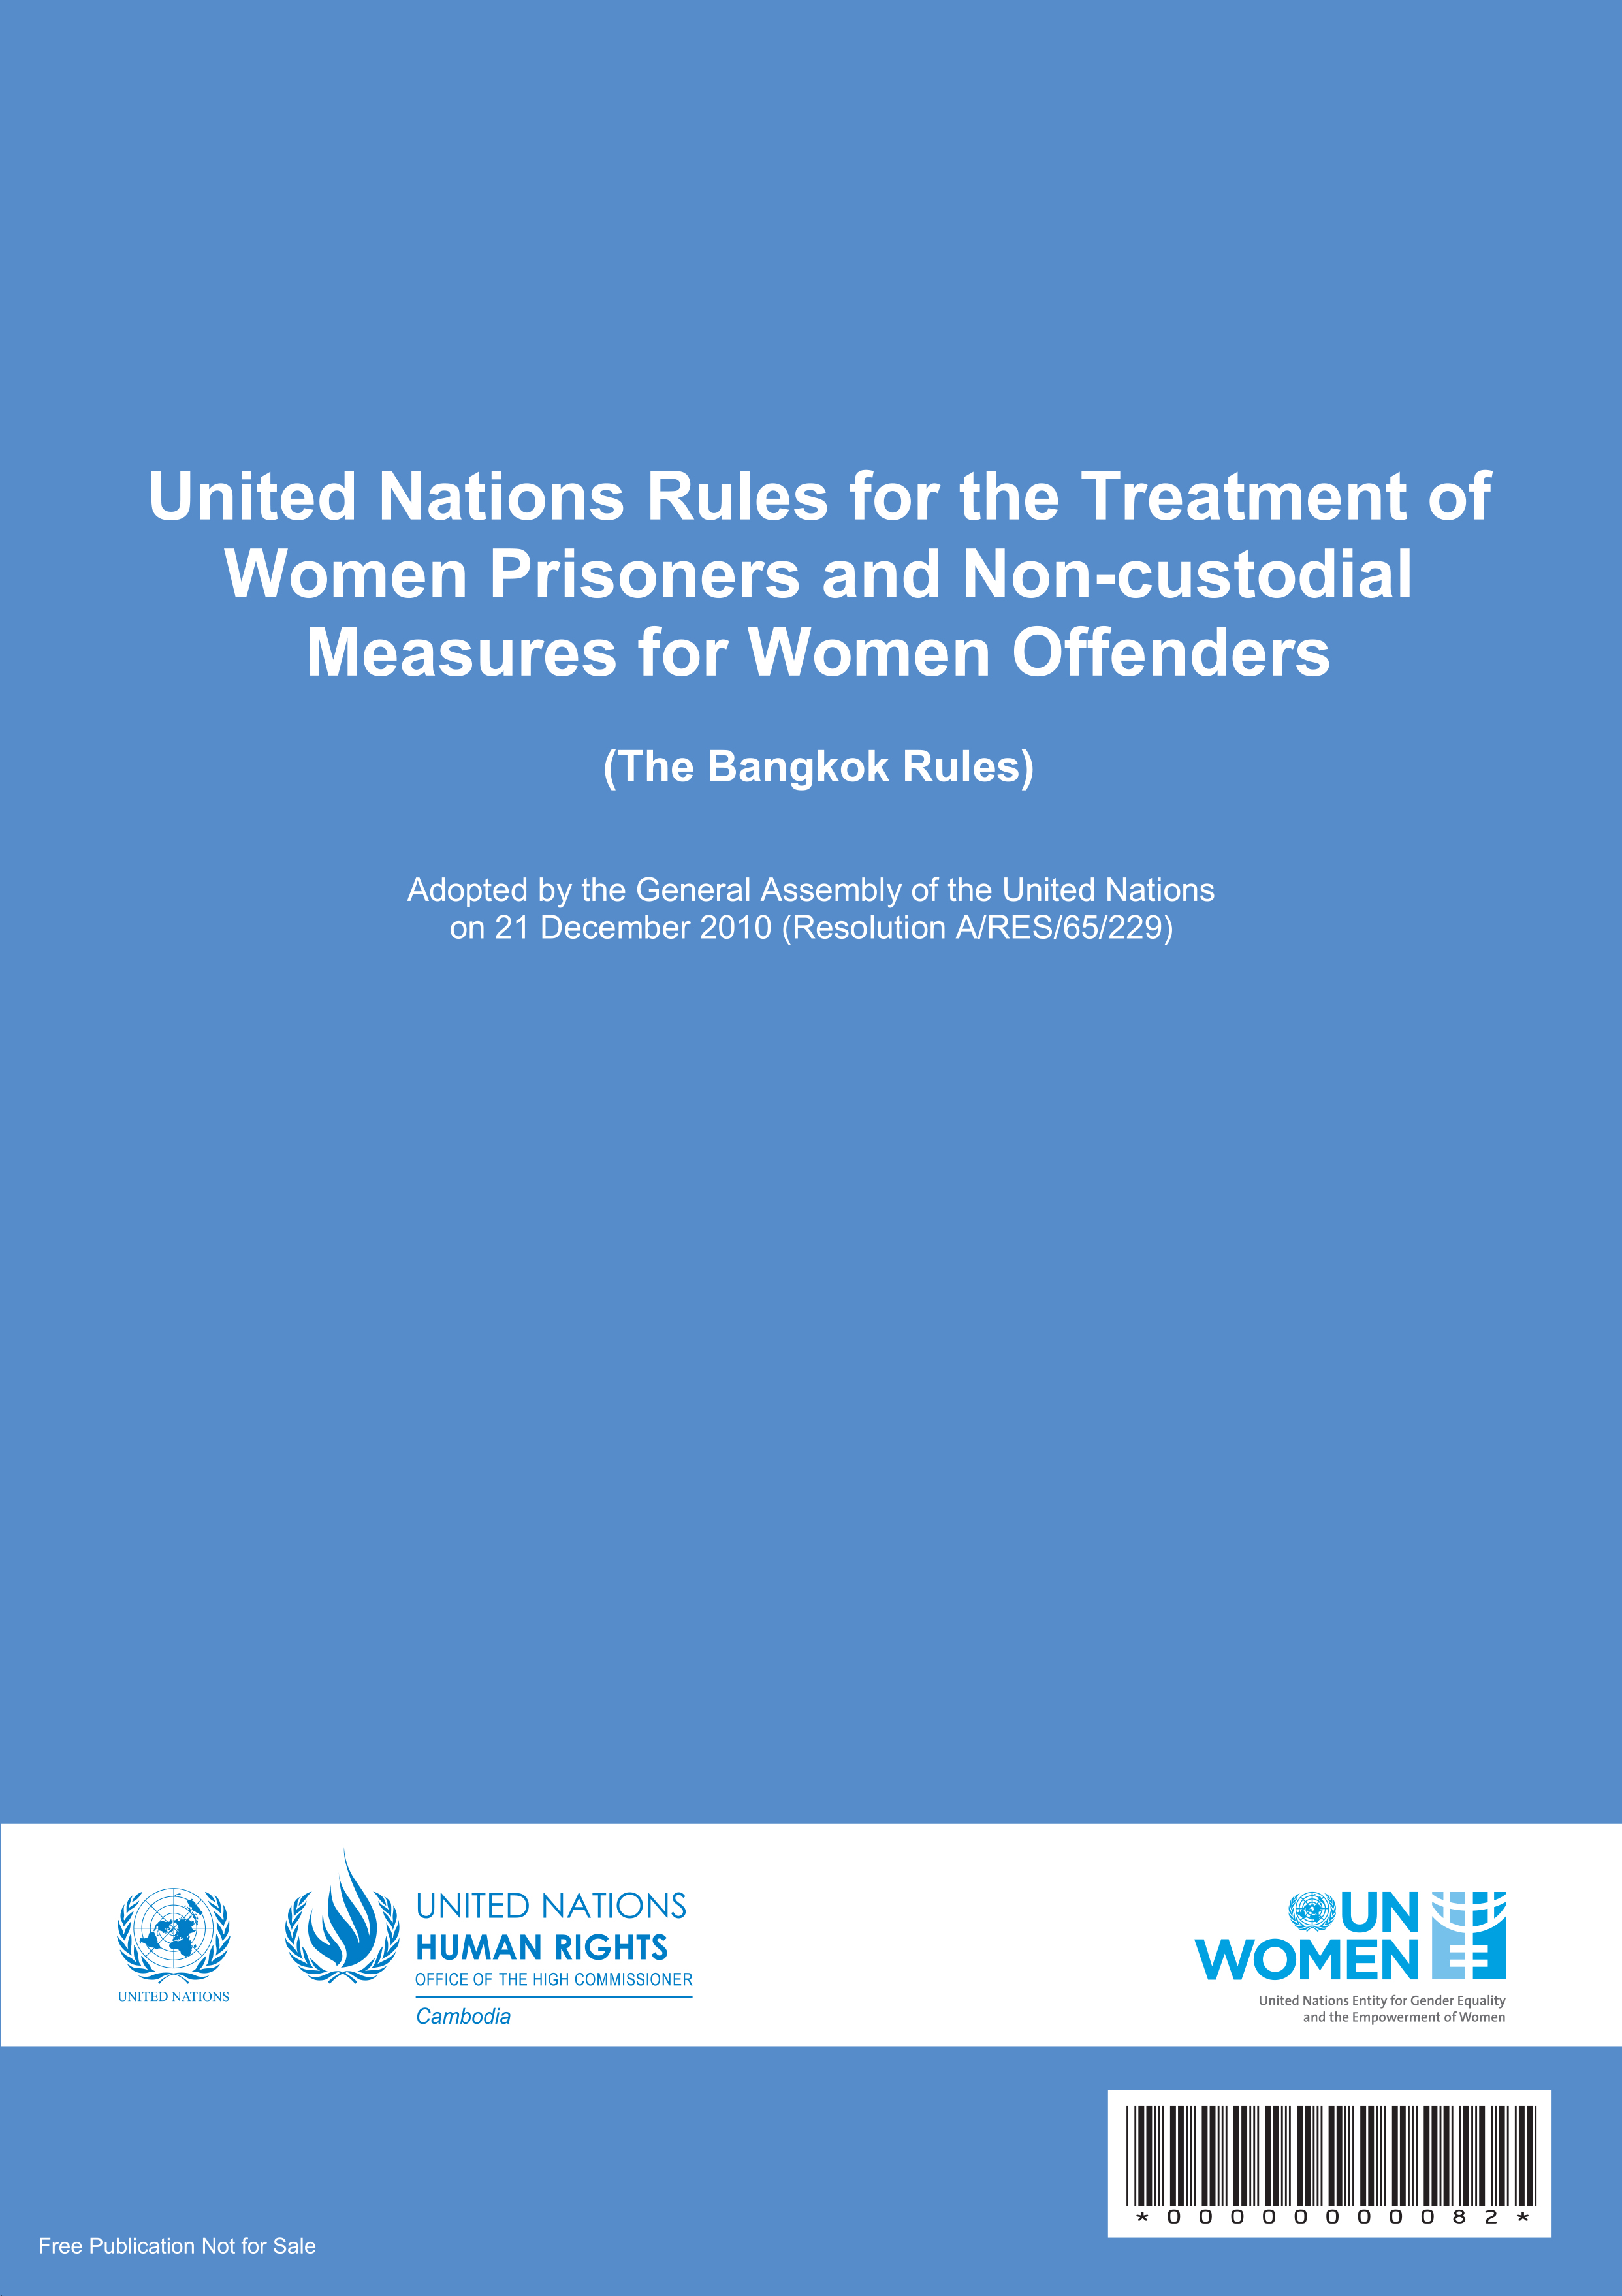 United Nations Rules for the Treatment of Women Prisoners and Non-custodial Measures for Women Offenders (the Bangkok Rules)